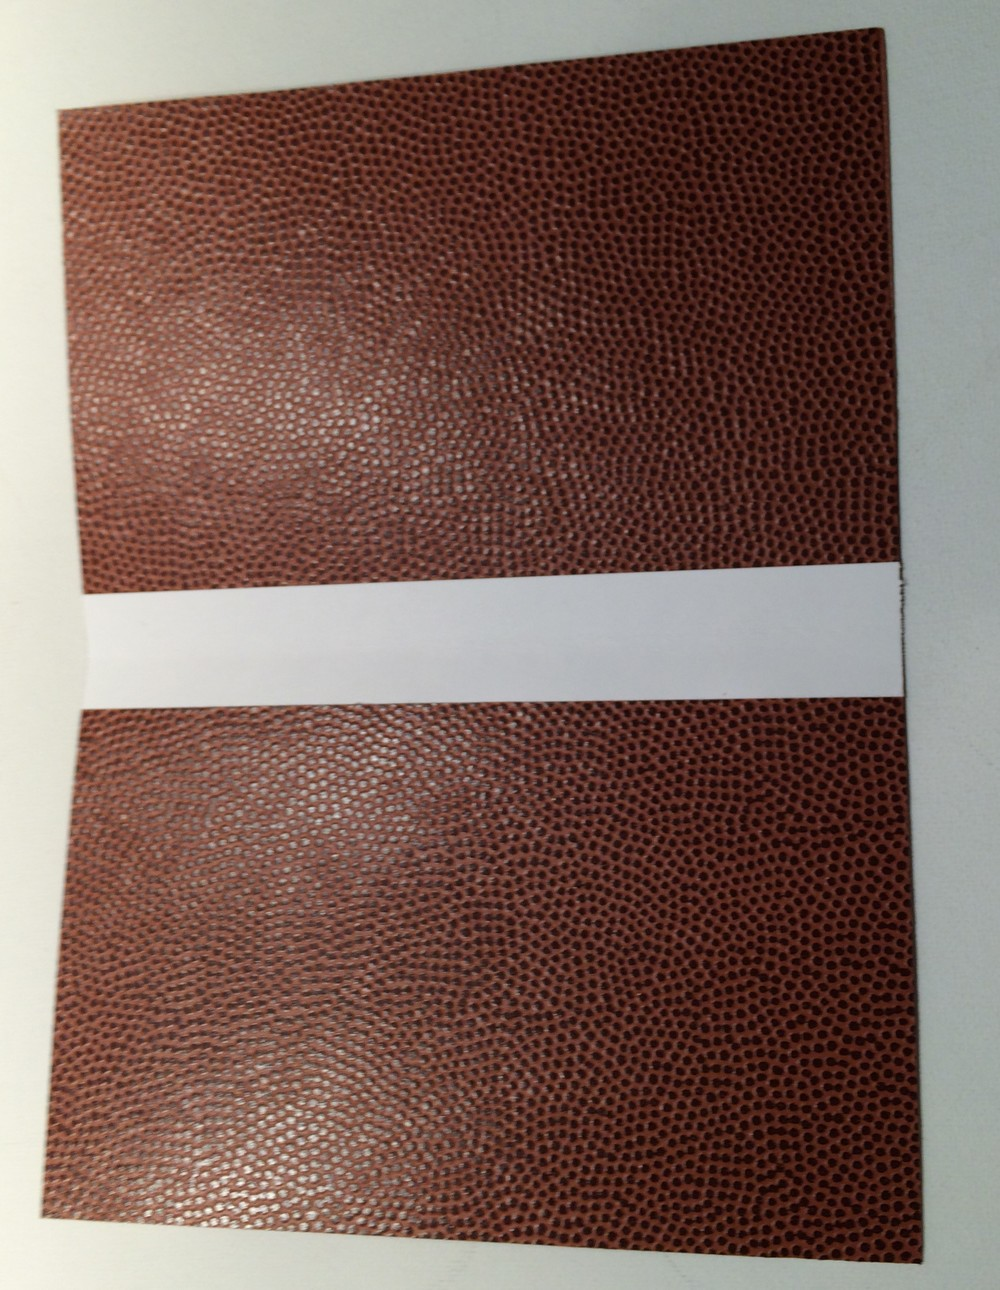 "We took two more 5"" x 7"" pieces of Football paper and secured them together. We cut a 1"" strip of white card stock and glued another piece on top of it and then set this down the center of the two 5"" x 5"" panels to create a folder."